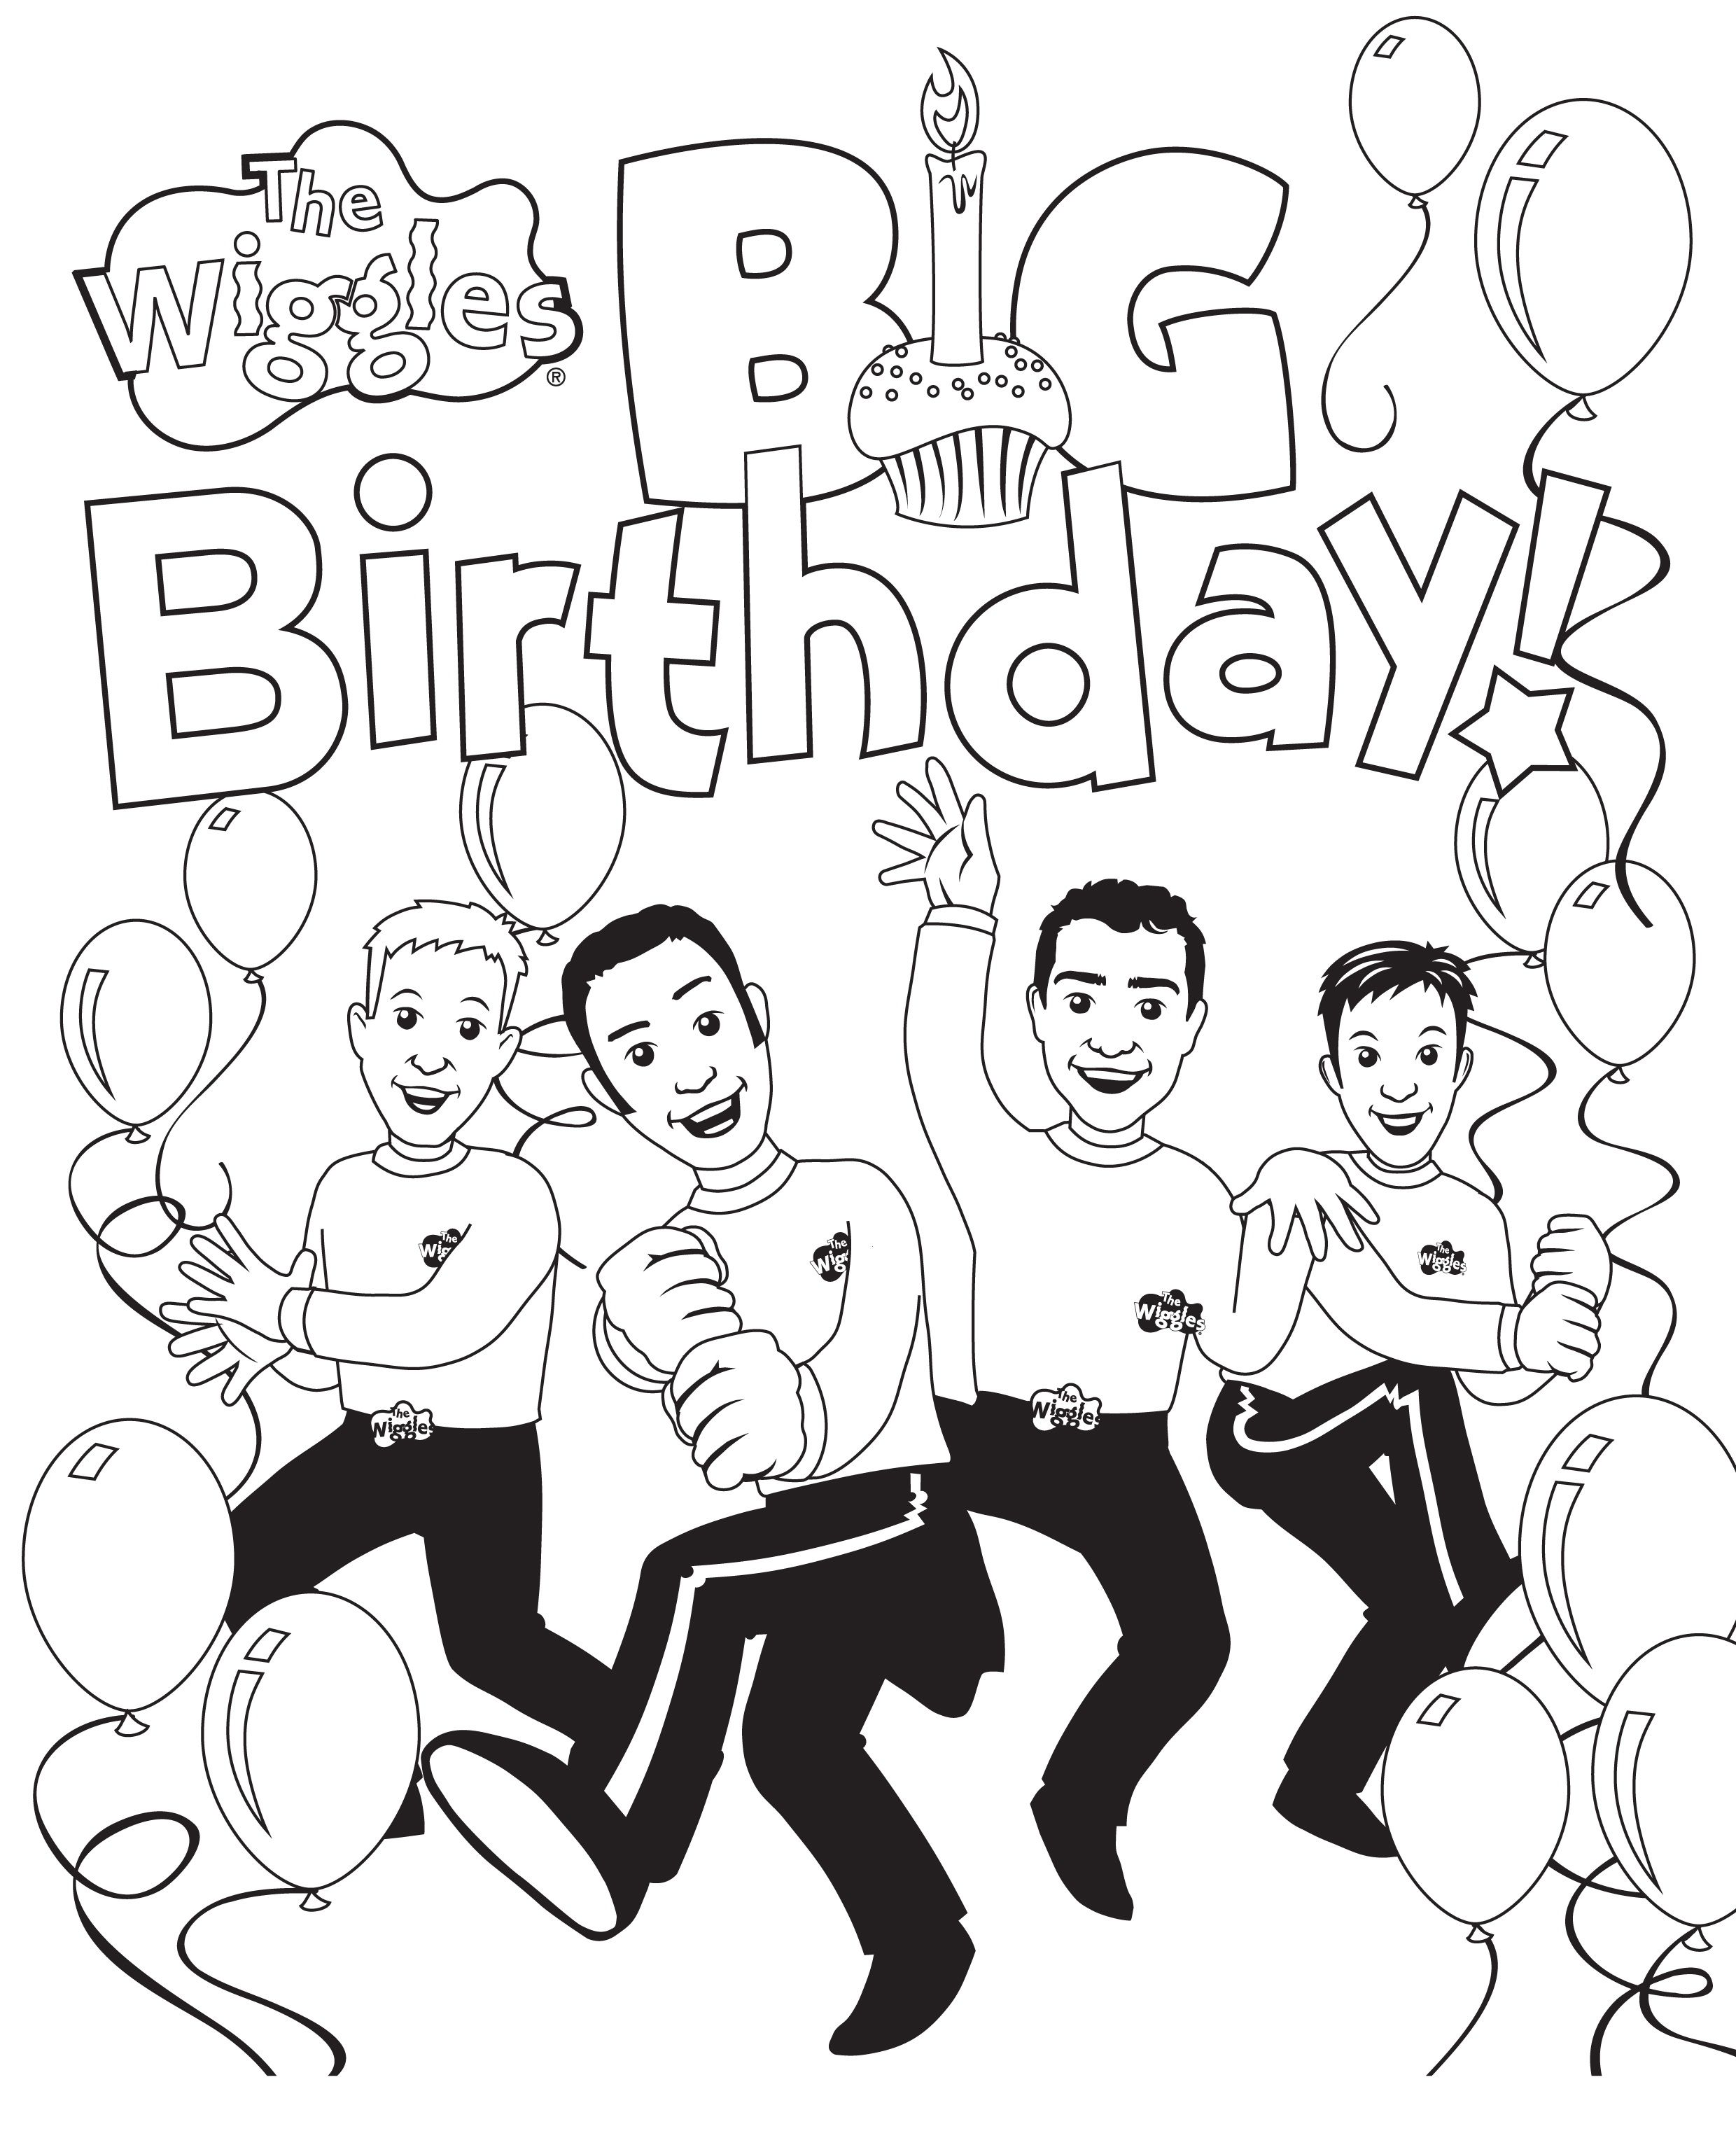 Free Printable Wiggles Coloring Pages Jpg 2 480 3 044 Pixels Wiggles Birthday Wiggles Party Birthday Themes For Boys